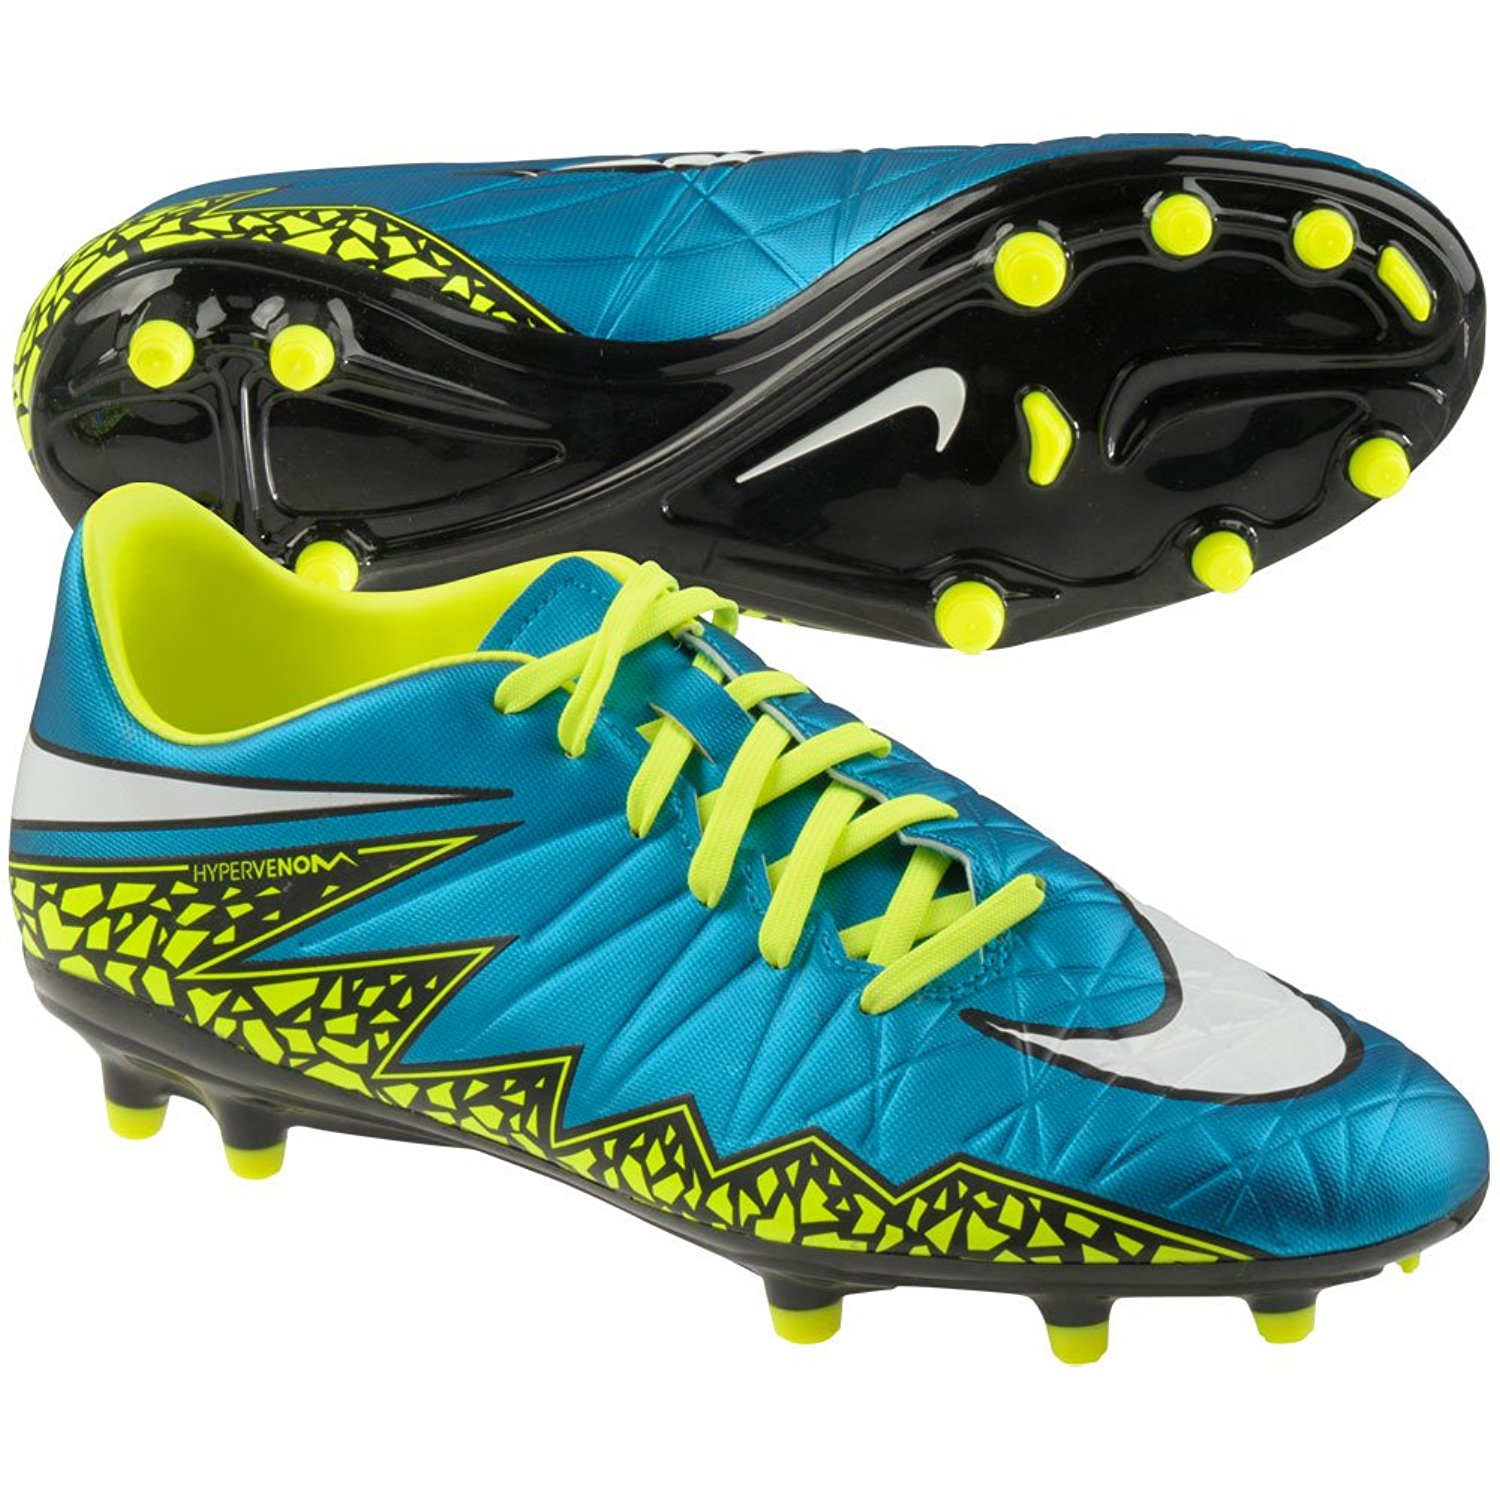 00c349a1f383 Get Quotations · Nike Women s Hypervenom Phelon II FG Soccer Cleat (Blue  Lagoon